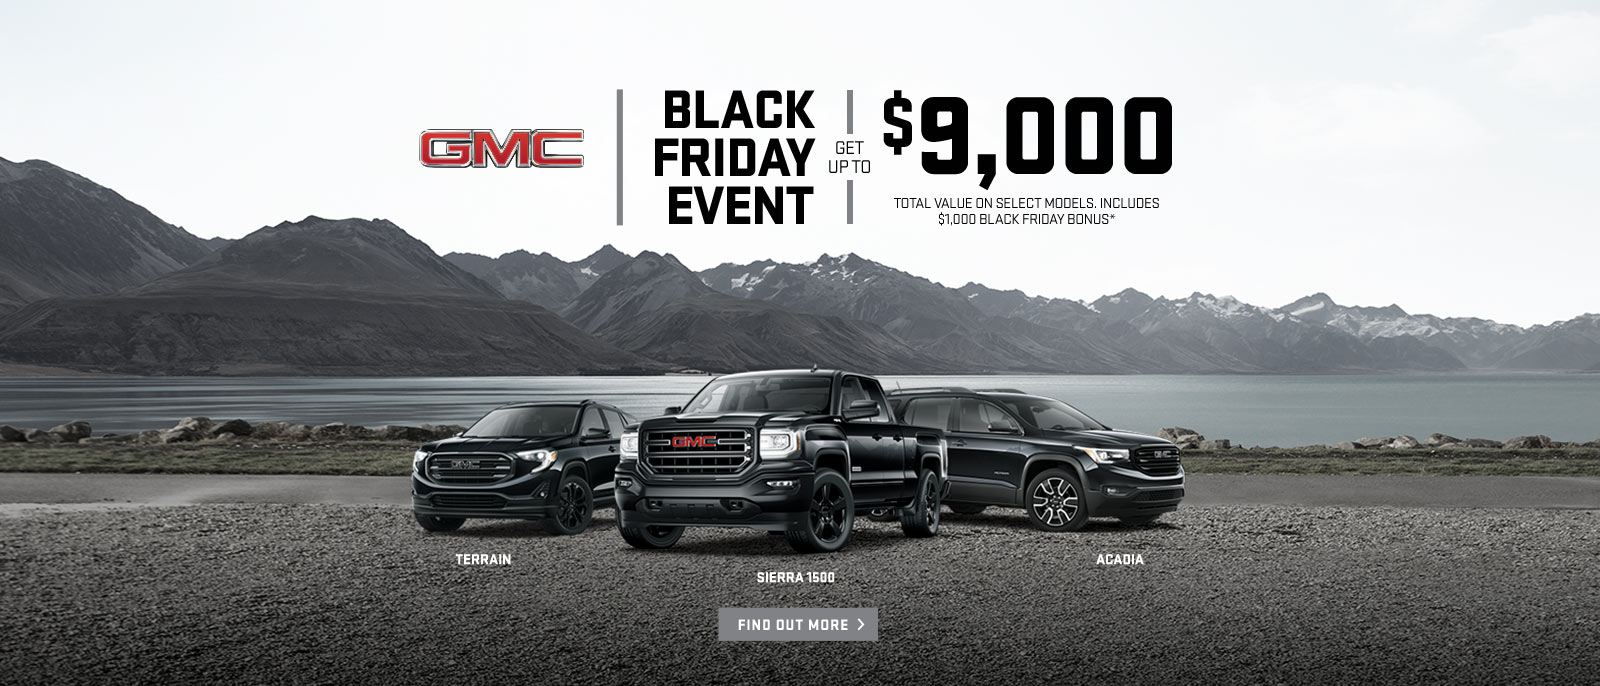 Black Friday Event 2018 GMC Sierra Terrain Acadia VanDusen Ajax Ontario